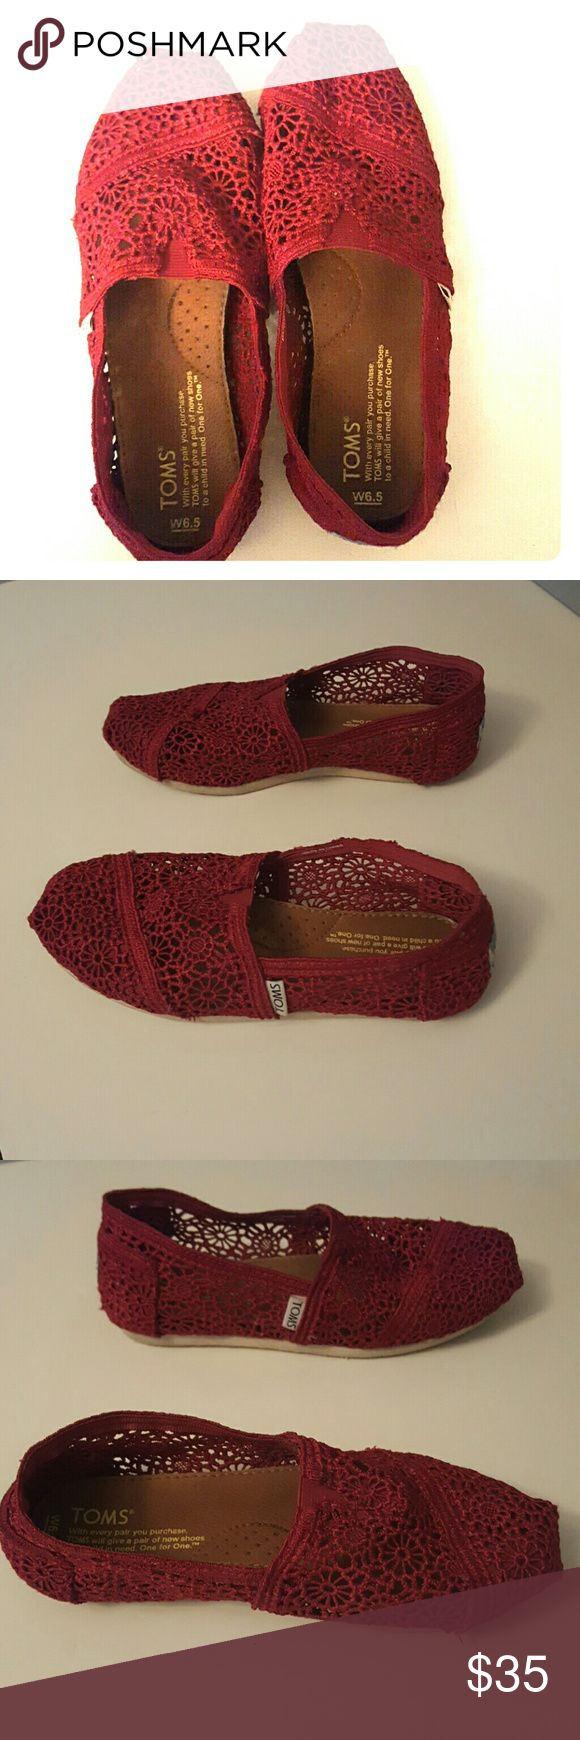 Red Crochet Toms These Toms have been worn but not a lot. Still in good condition and hardly have a foot print on the sole. Darker red rather than bright red. Size 6.5. TOMS Shoes Flats & Loafers